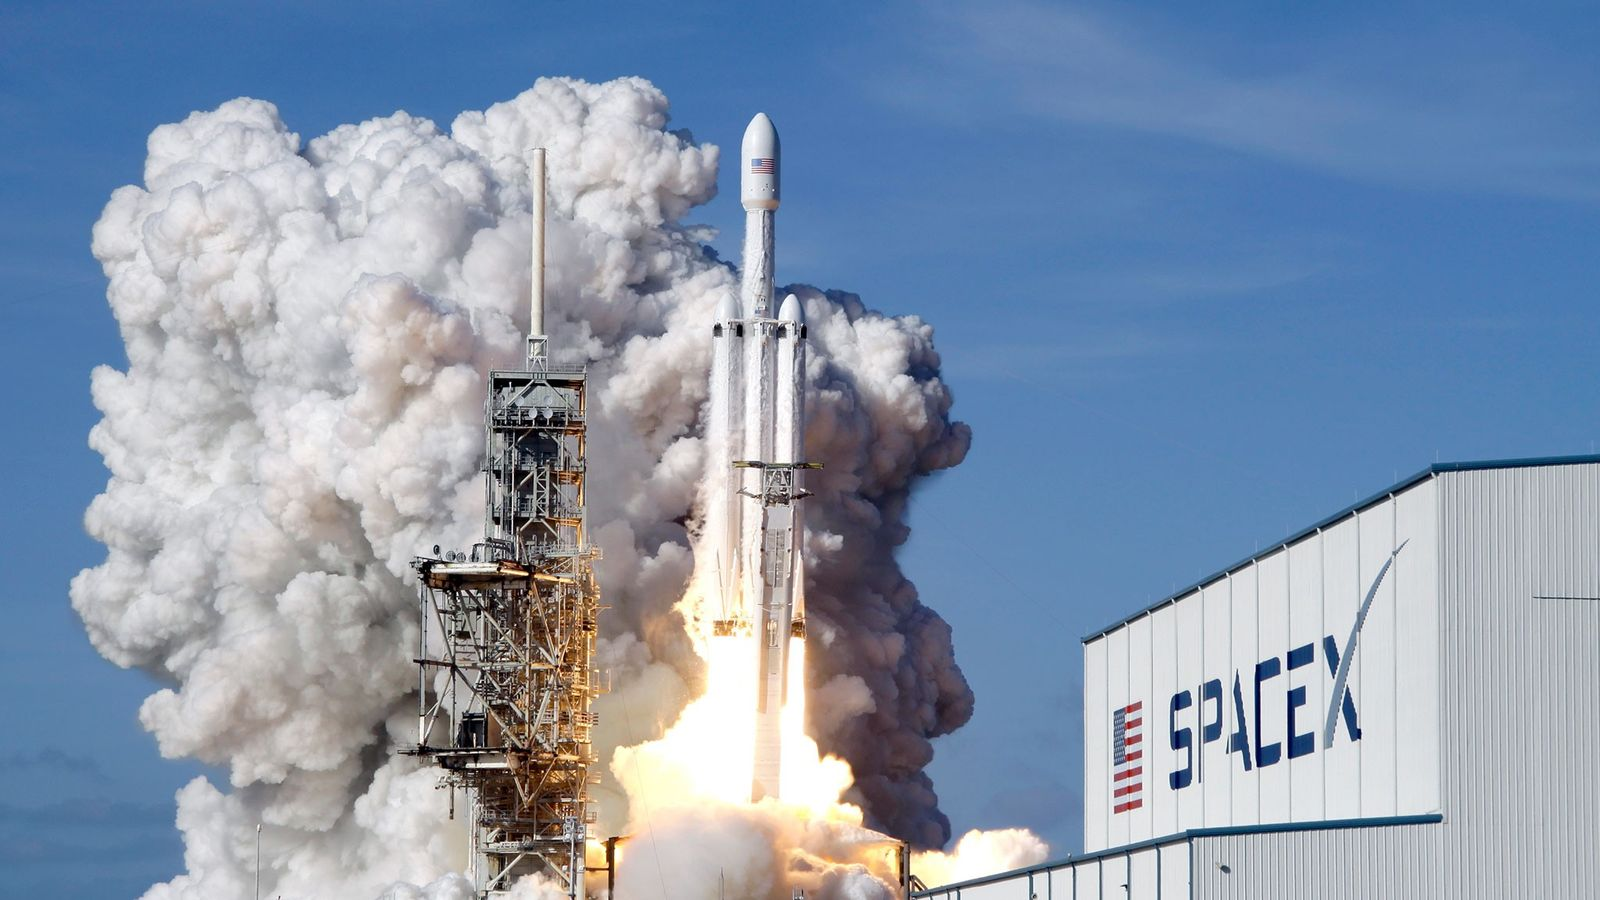 A SpaceX Falcon 9 rocket lifts off from Kennedy Space Center in February 2018.